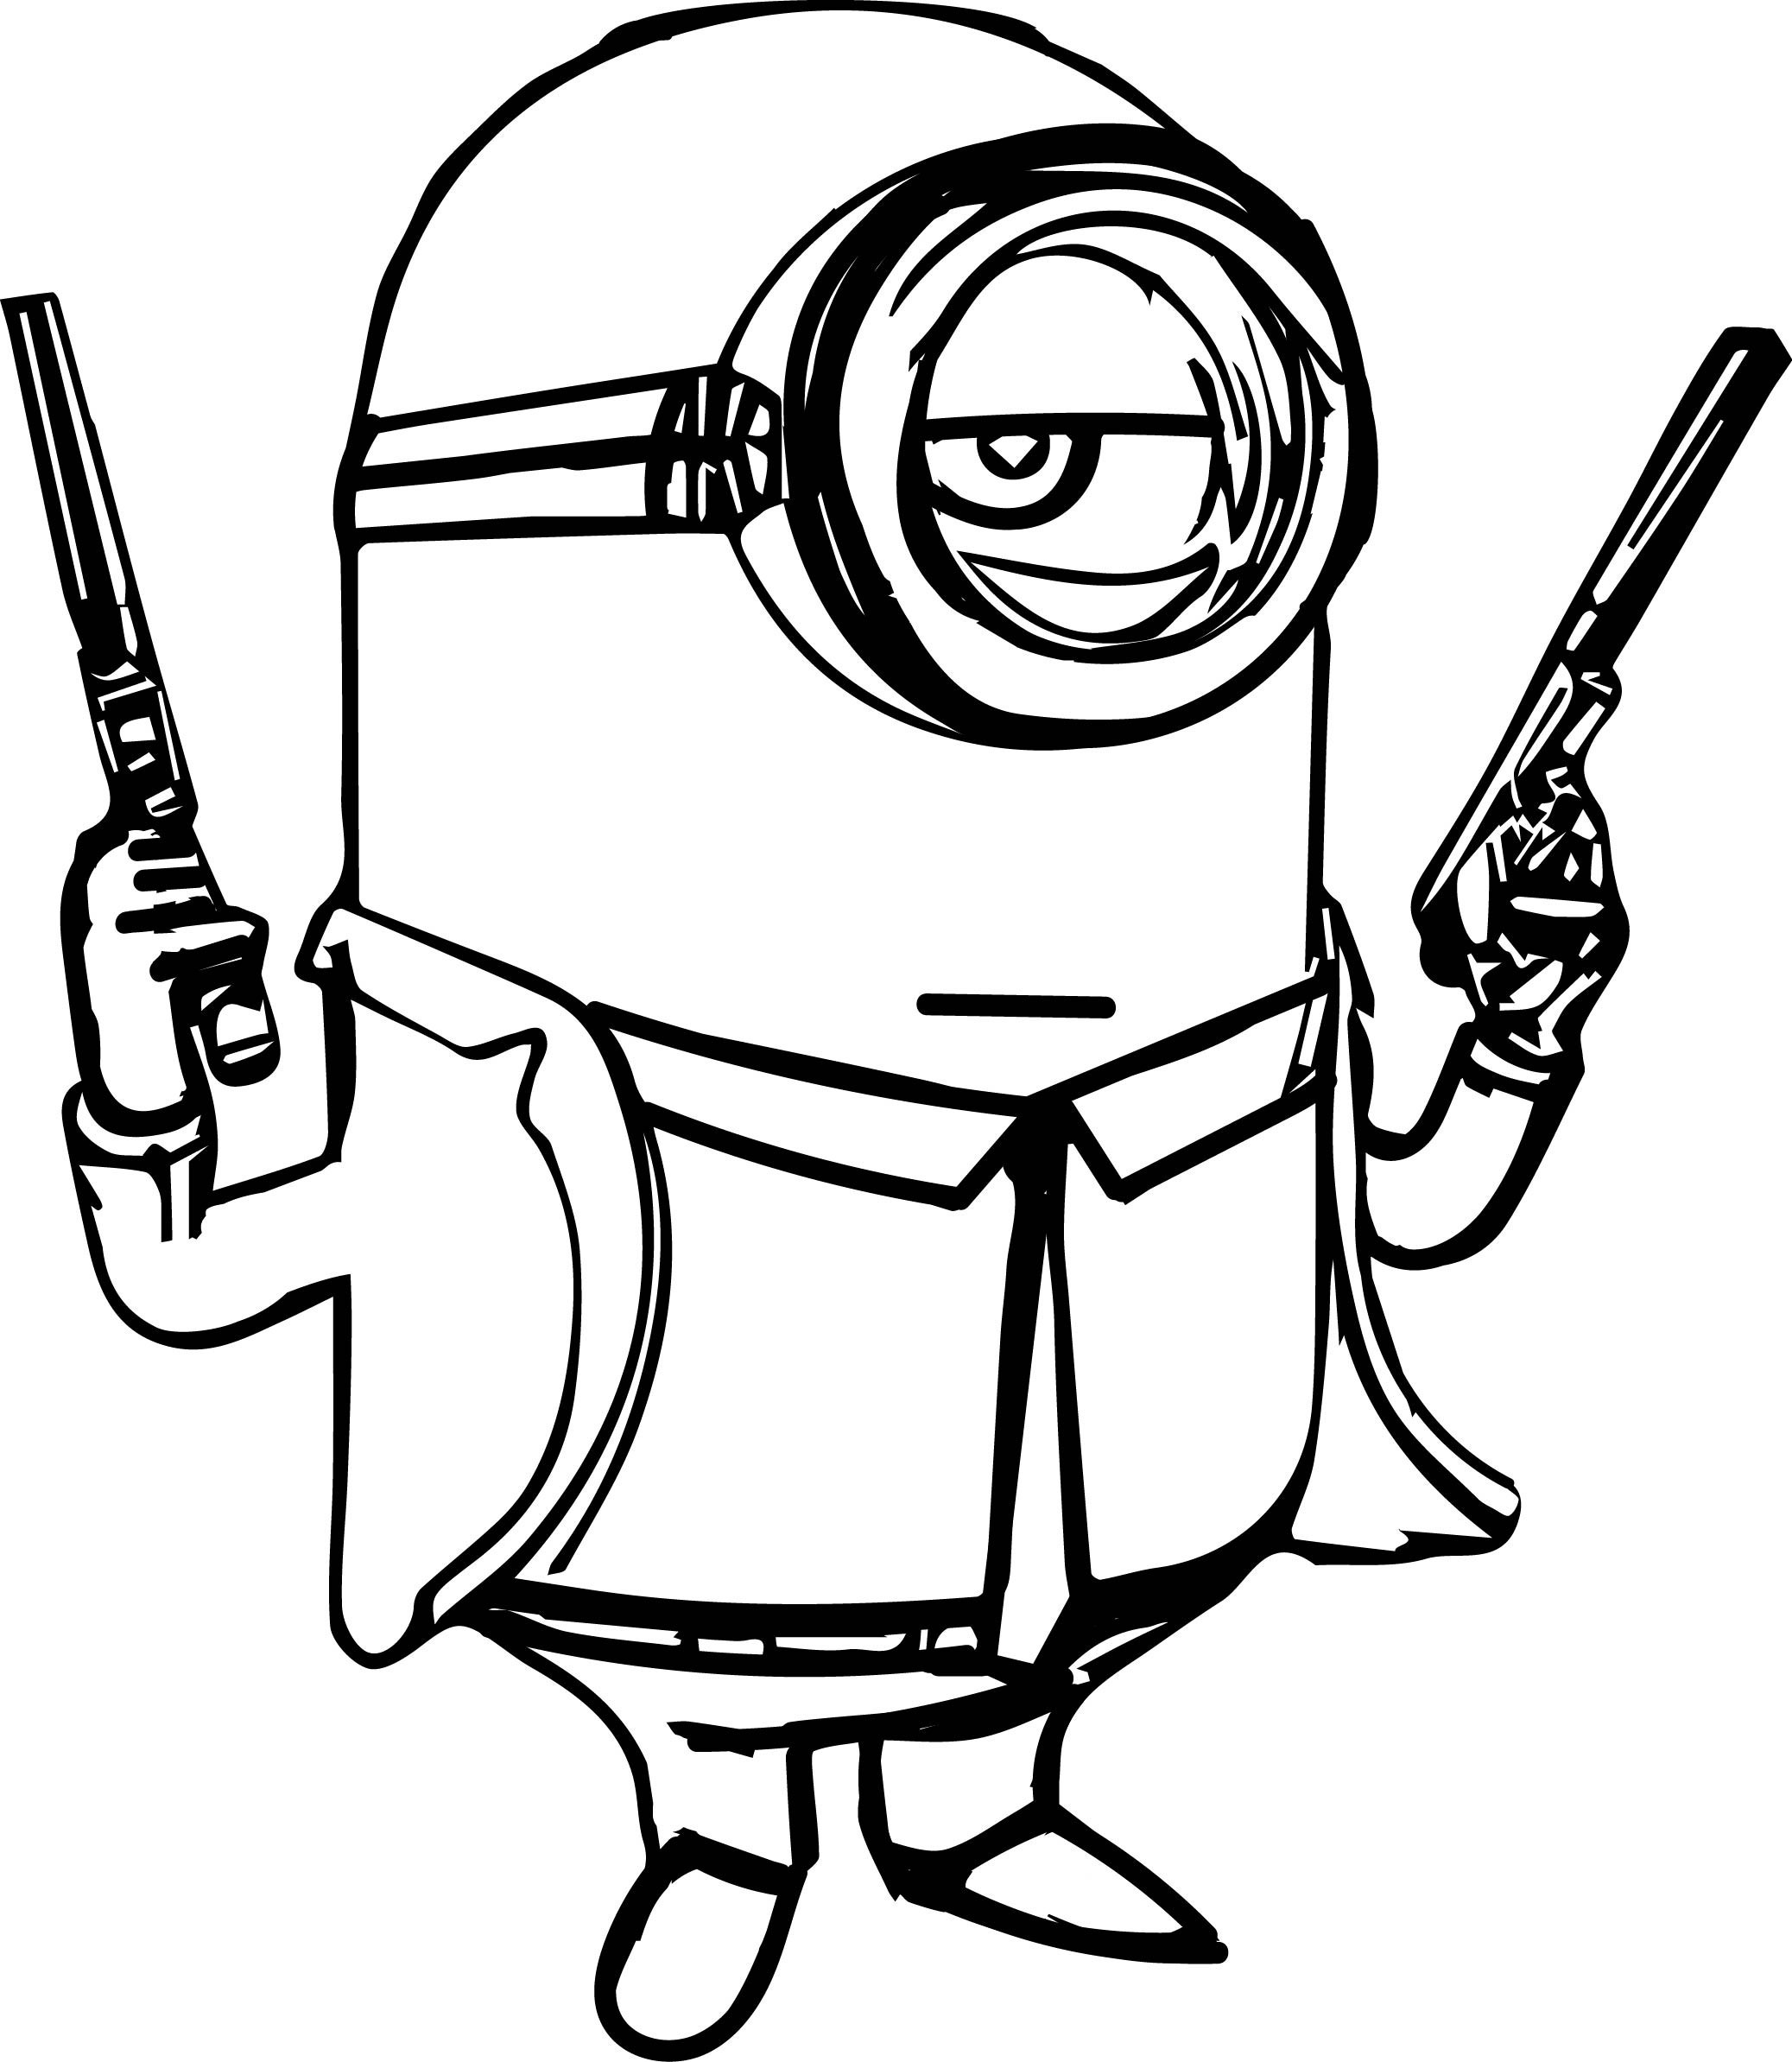 gun colouring pictures gun coloring pages pictures gun colouring